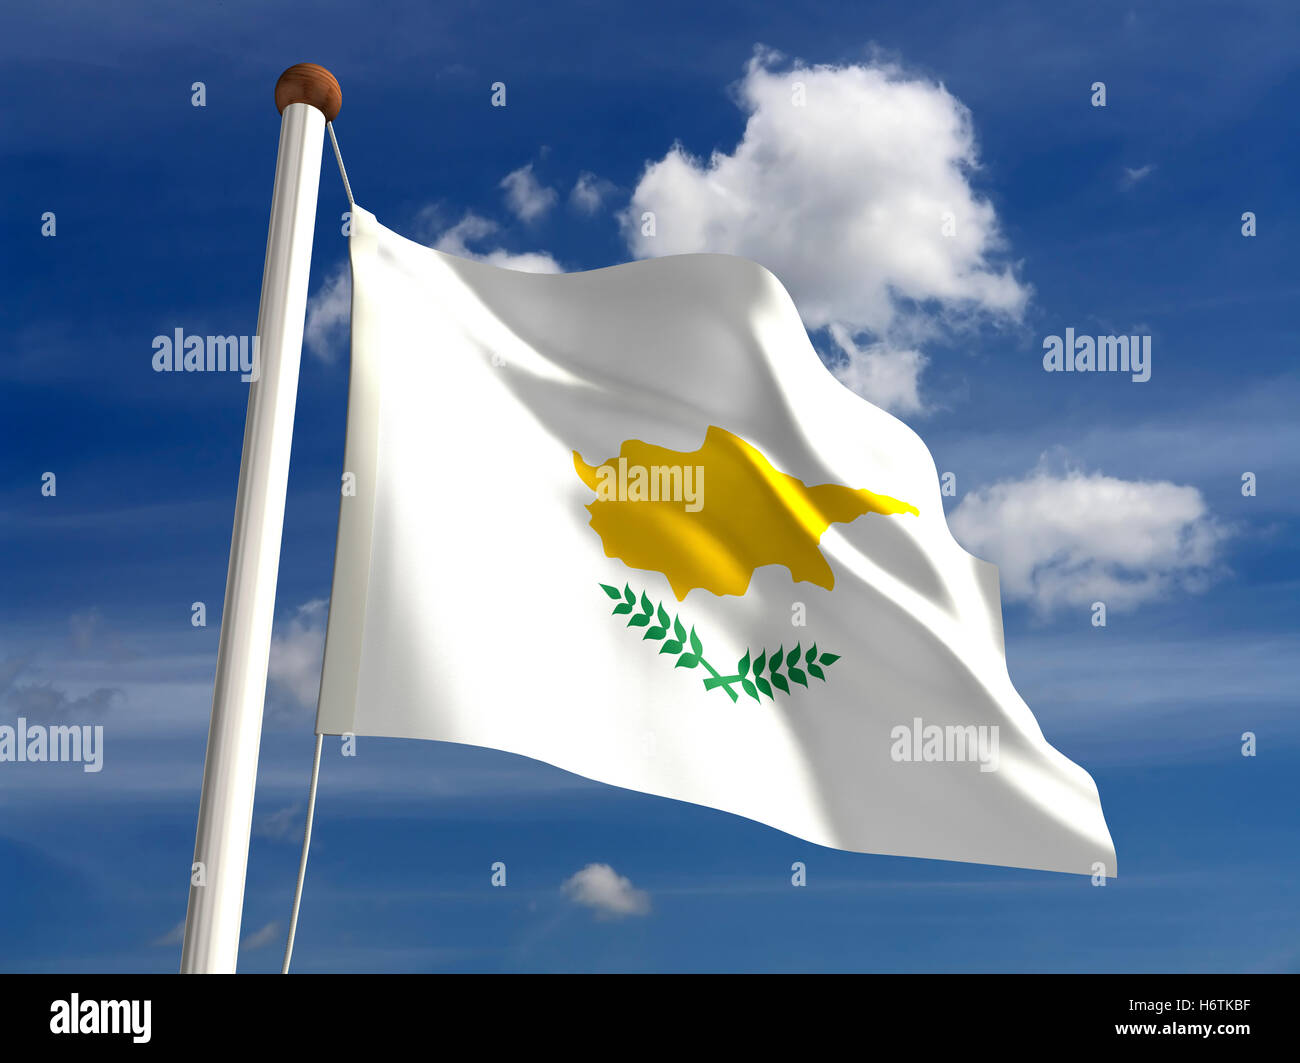 cloud, stream, flag, pole, day, during the day, cyprus, nobody, unity, - Stock Image